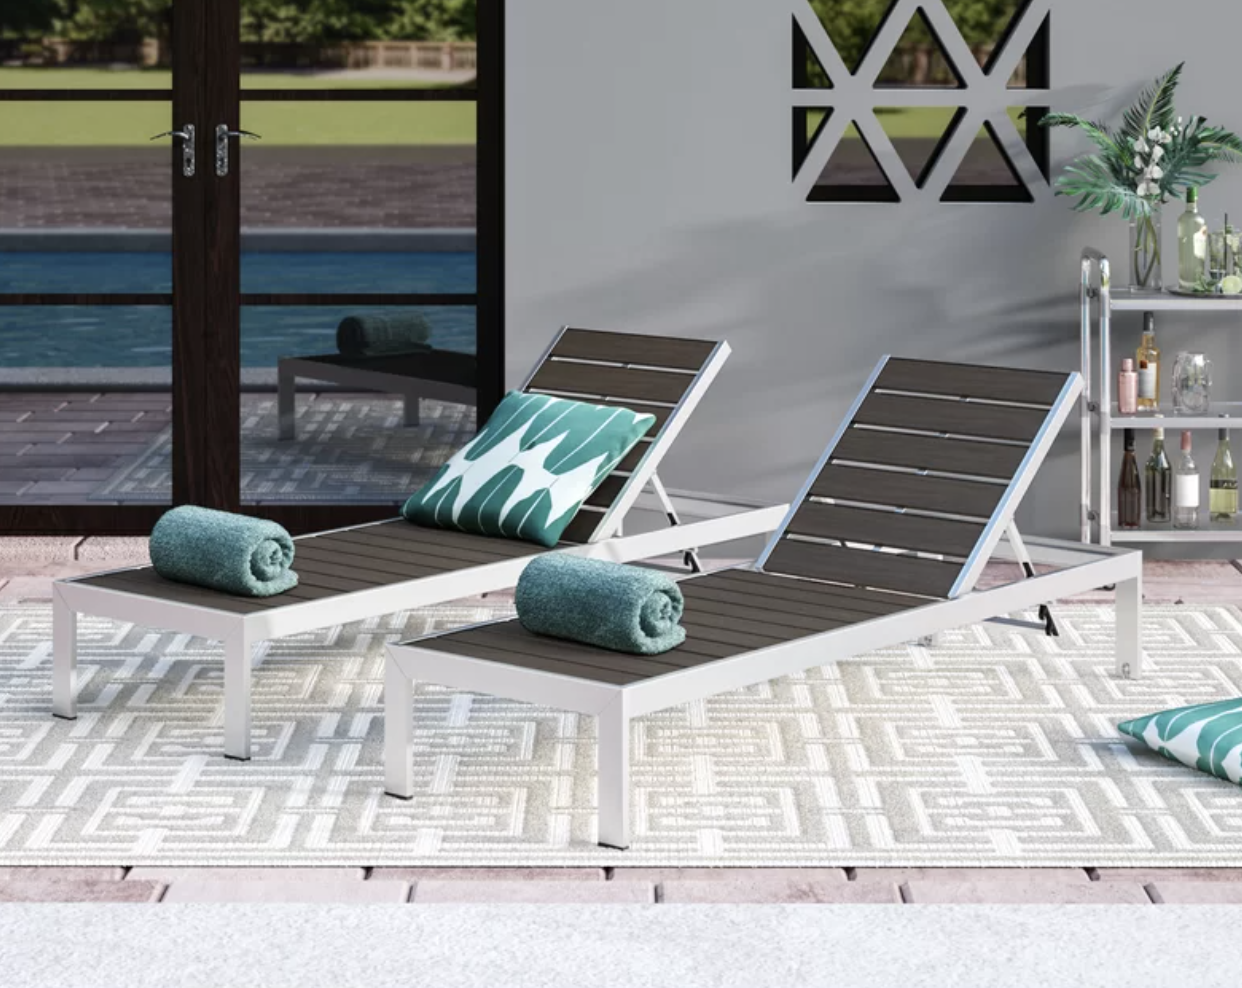 Two brown and white lounge chairs with teal towels on top